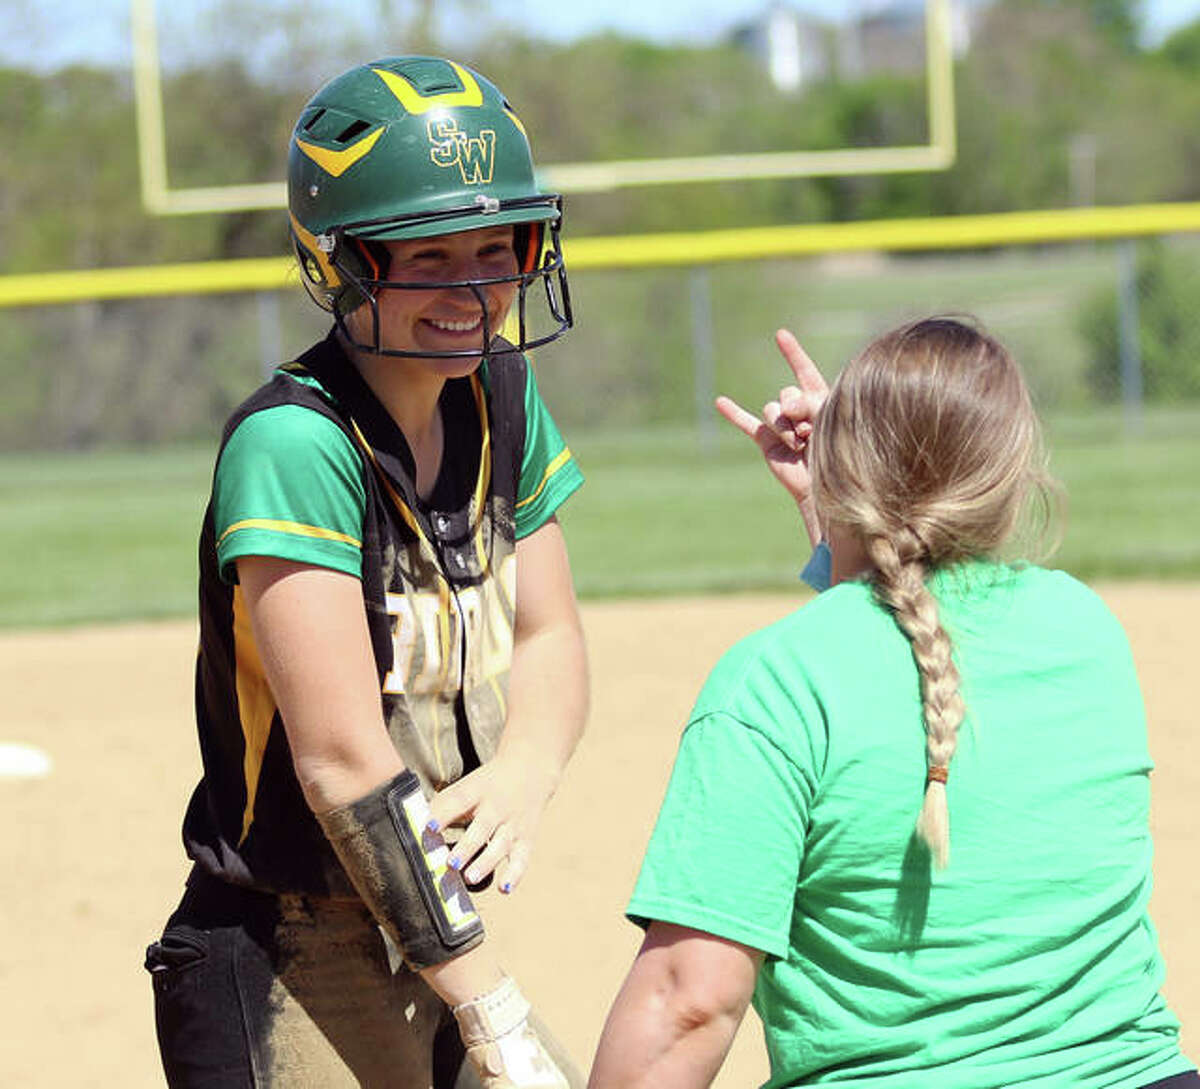 Southwestern's Megan Bailey (left) smiles at first base coach Amanda Edwards after Bailey's RBI single gave the Piasa Birds a 1-0 lead over Edwardsville in a May 12 game in Piasa.